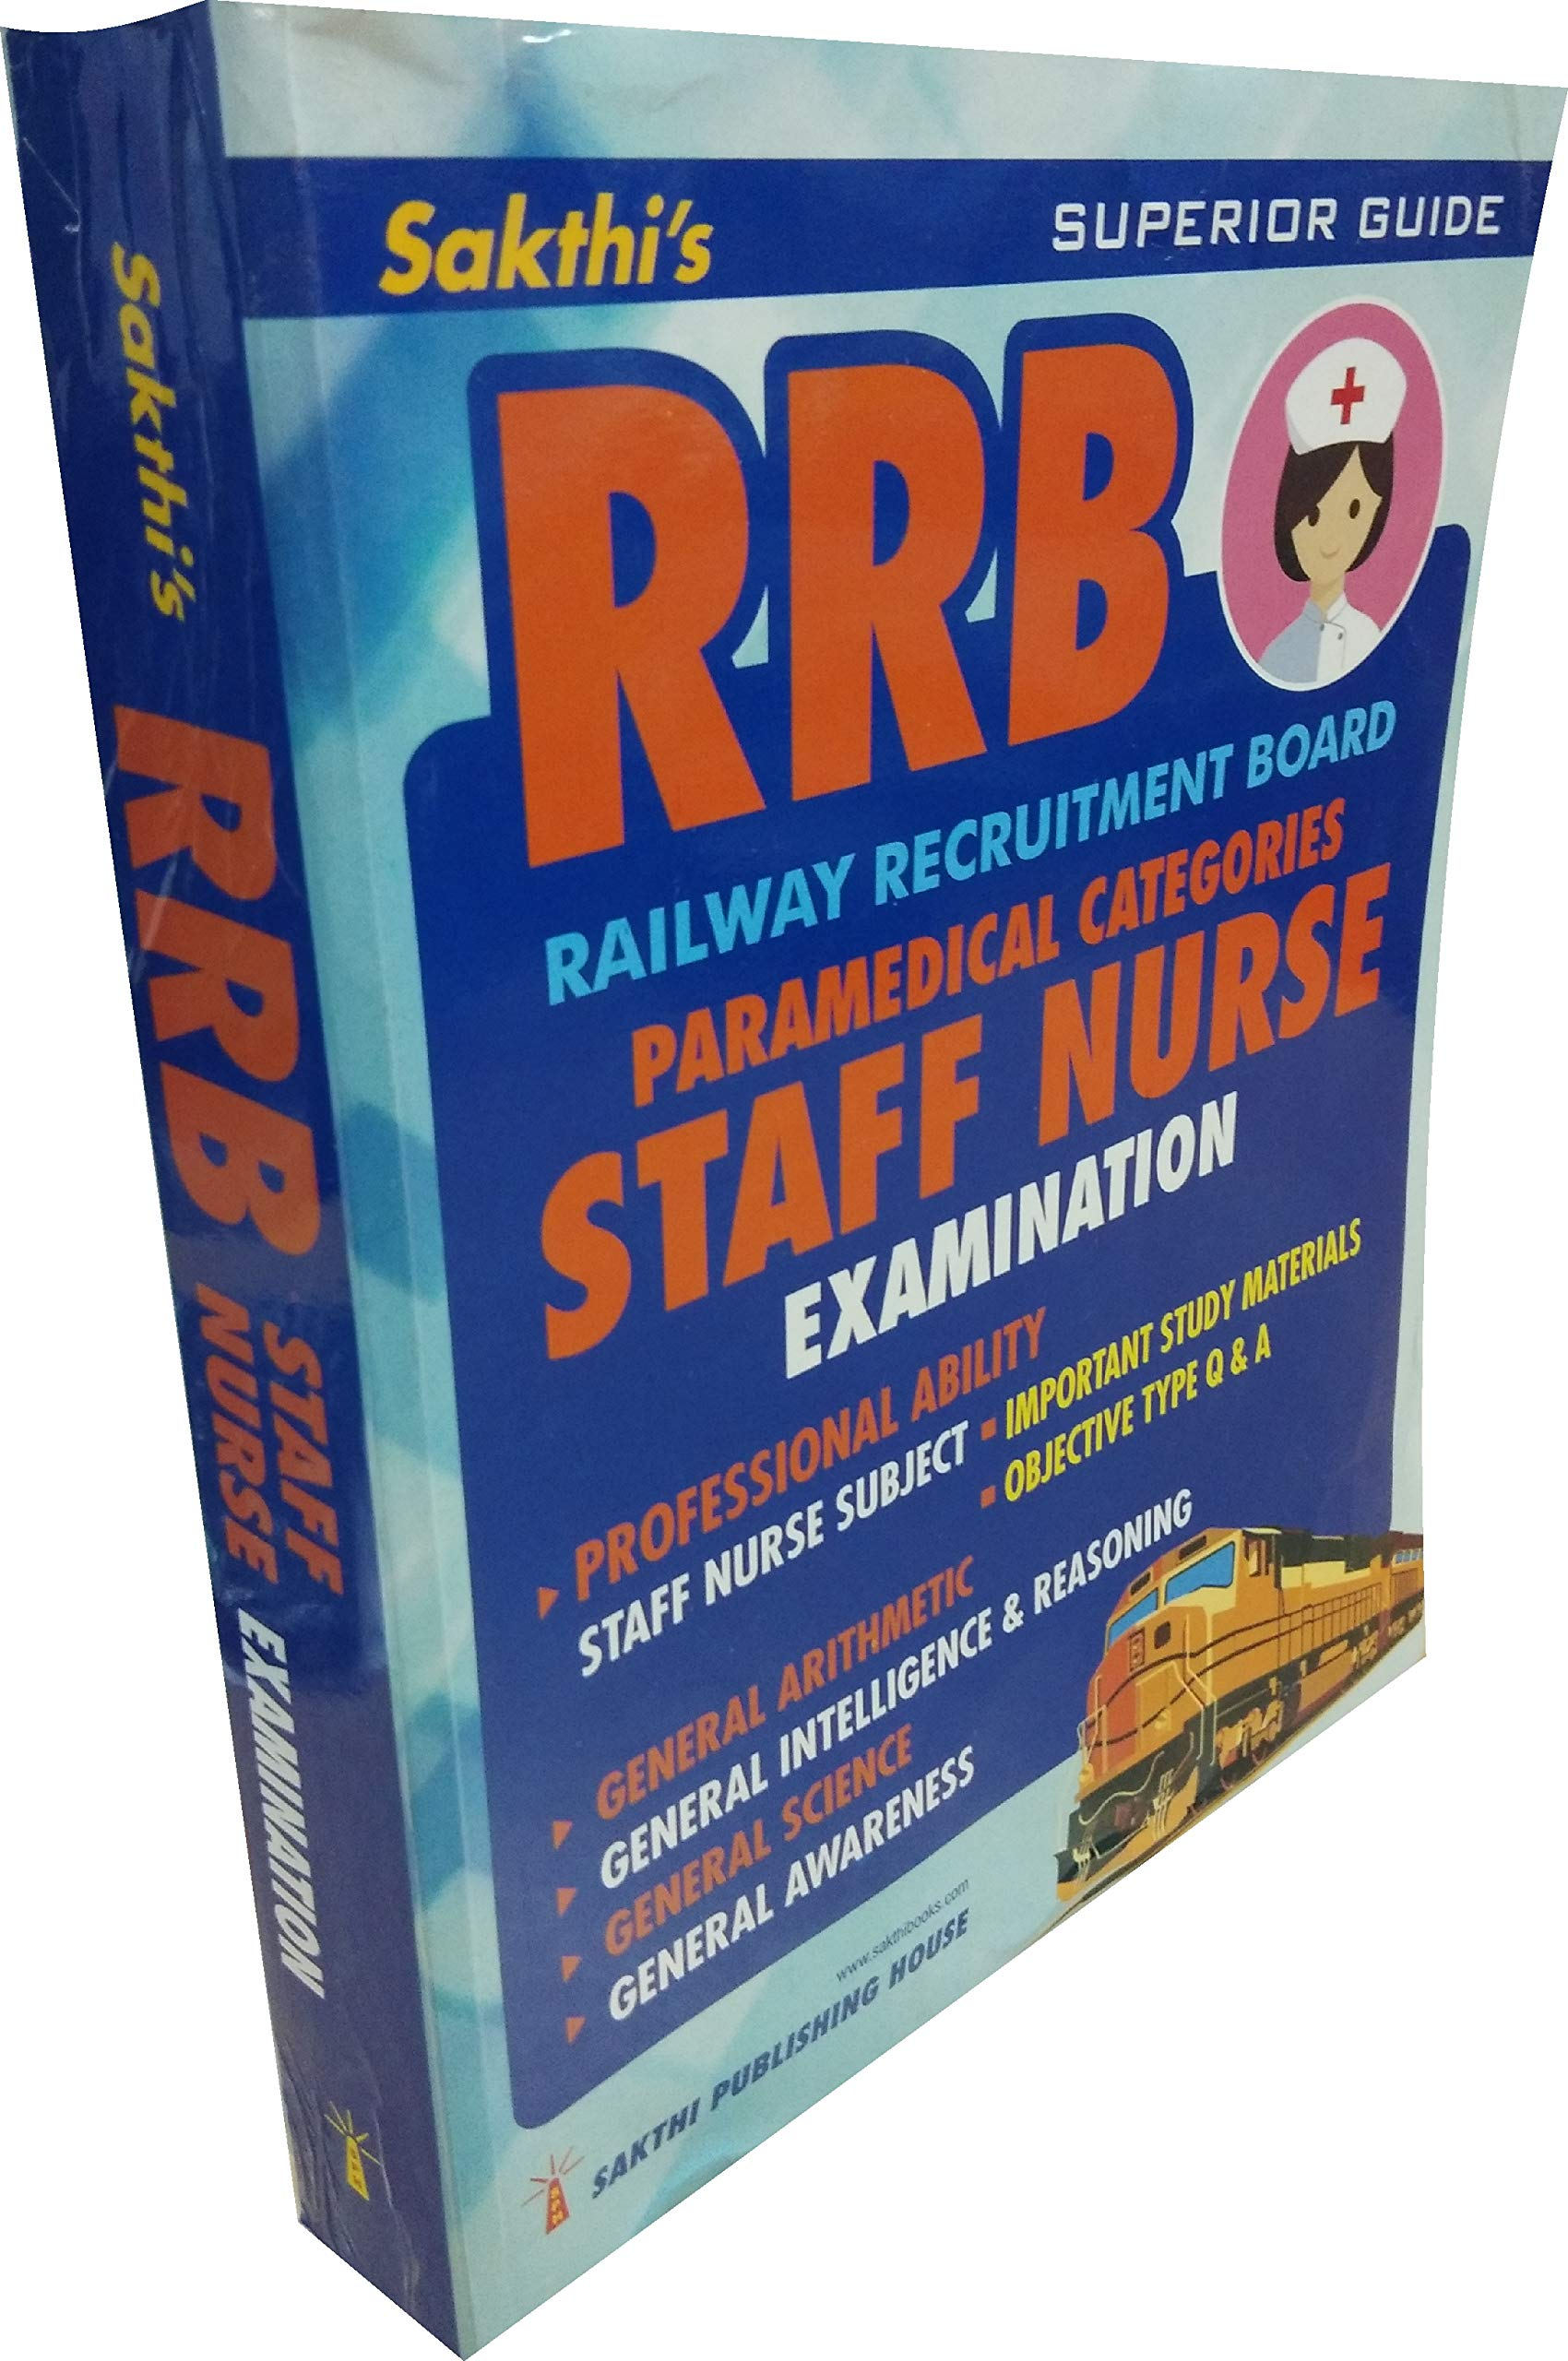 Buy RRB Exam Guide in English for Paramedical Categories